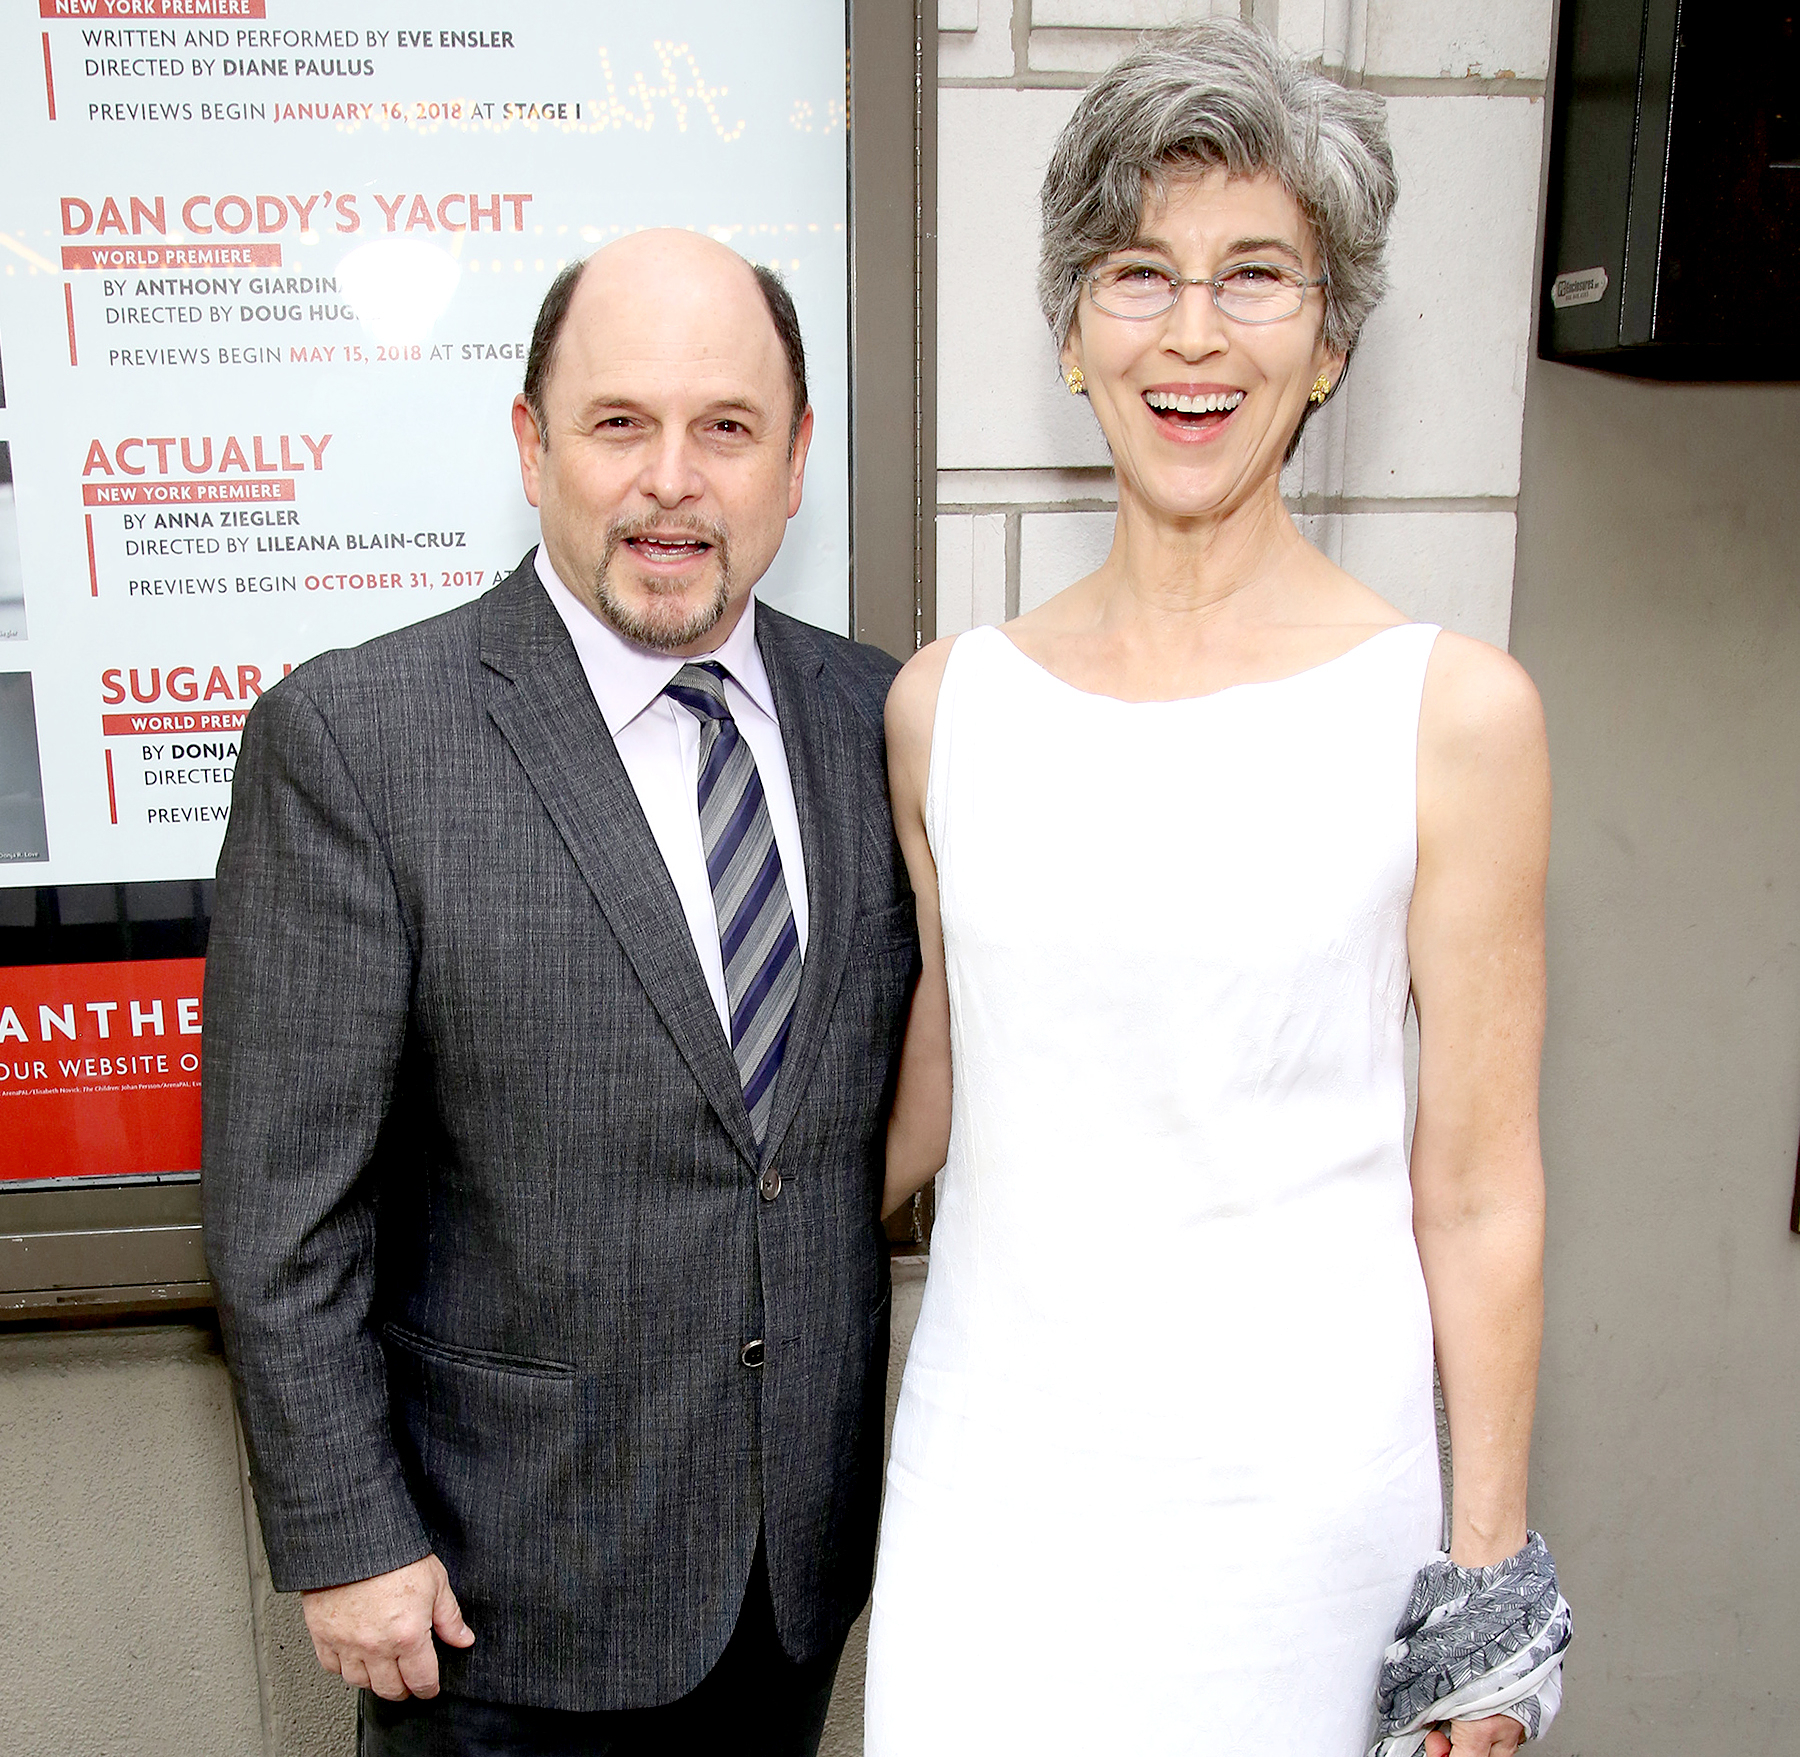 Jason Alexander and Daena E. Title attend the Broadway Opening Night performance of 'The Prince of Broadway' at the Samuel J. Friedman Theatre on August 24, 2017 in New York City.